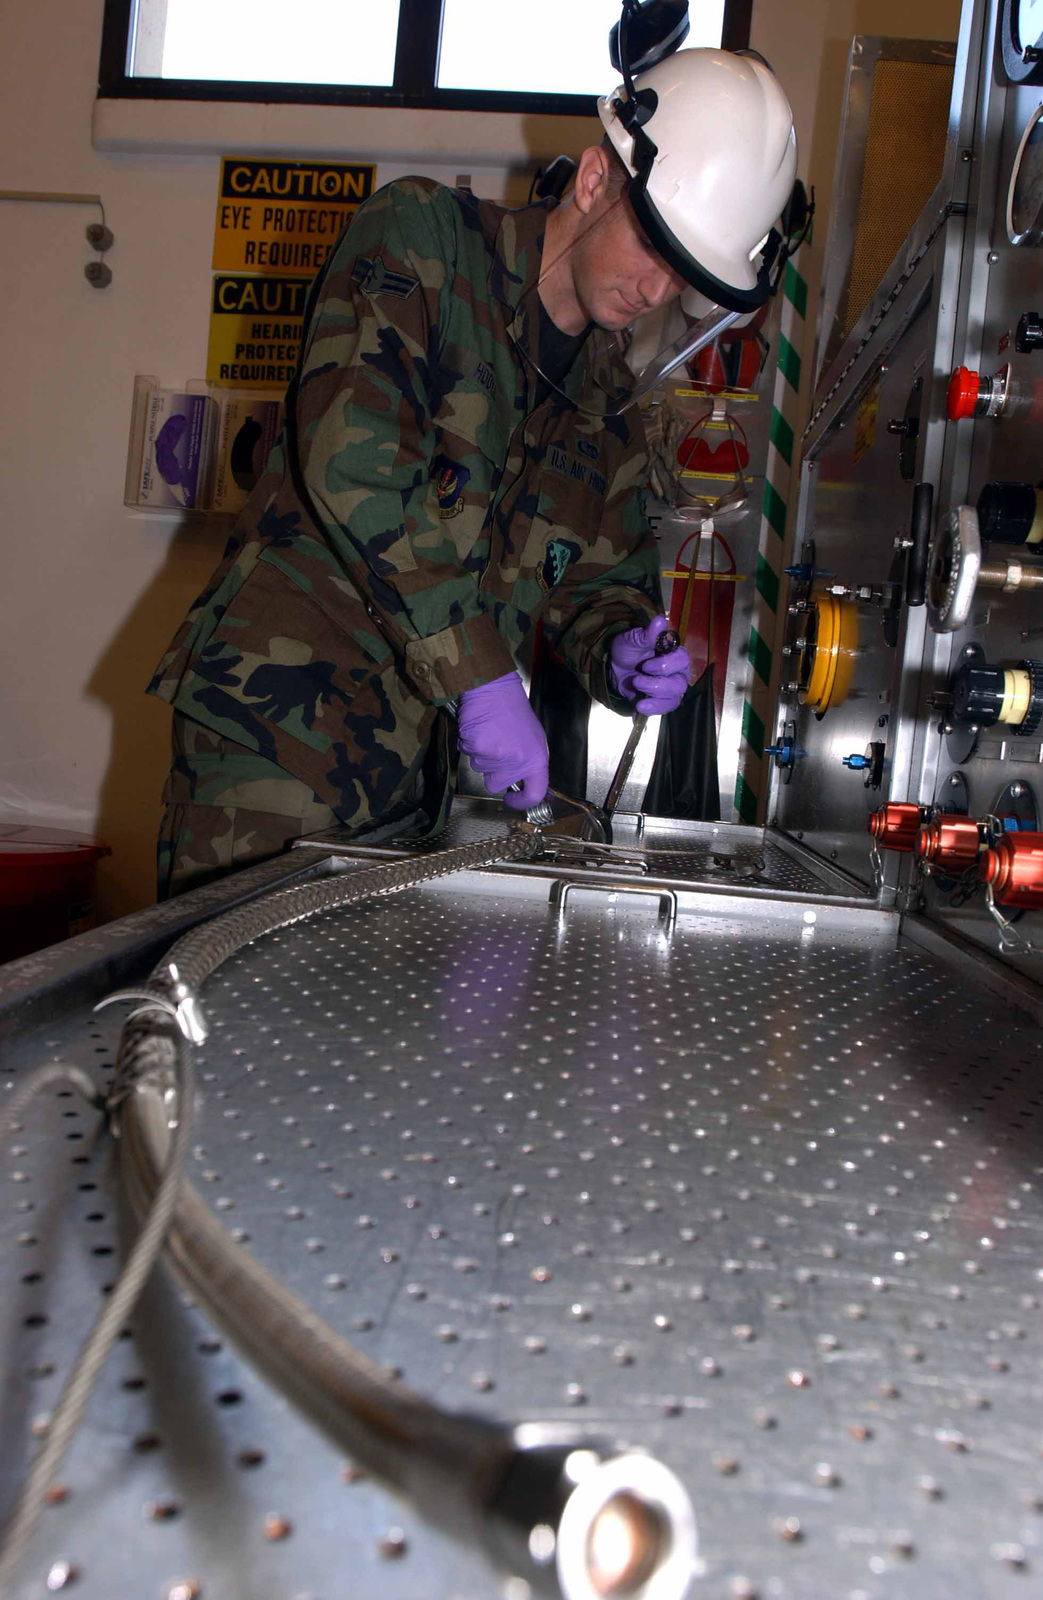 US Air Force (USAF) AIRMAN First Class (A1C) Adam Hooke, Hydraulic Journeyman, Accessories flight, 31st Maintenance Squadron (MXS), sets up the AvTec 843 Hydraulic Test Stand. This operation checks hydraulic equipment on the F-16 Fighting Falcon to include; Brakes, shocks, flight controls - such as leading edge slats. The test stand insures the equipment generates and handles the proper hydraulic pressure